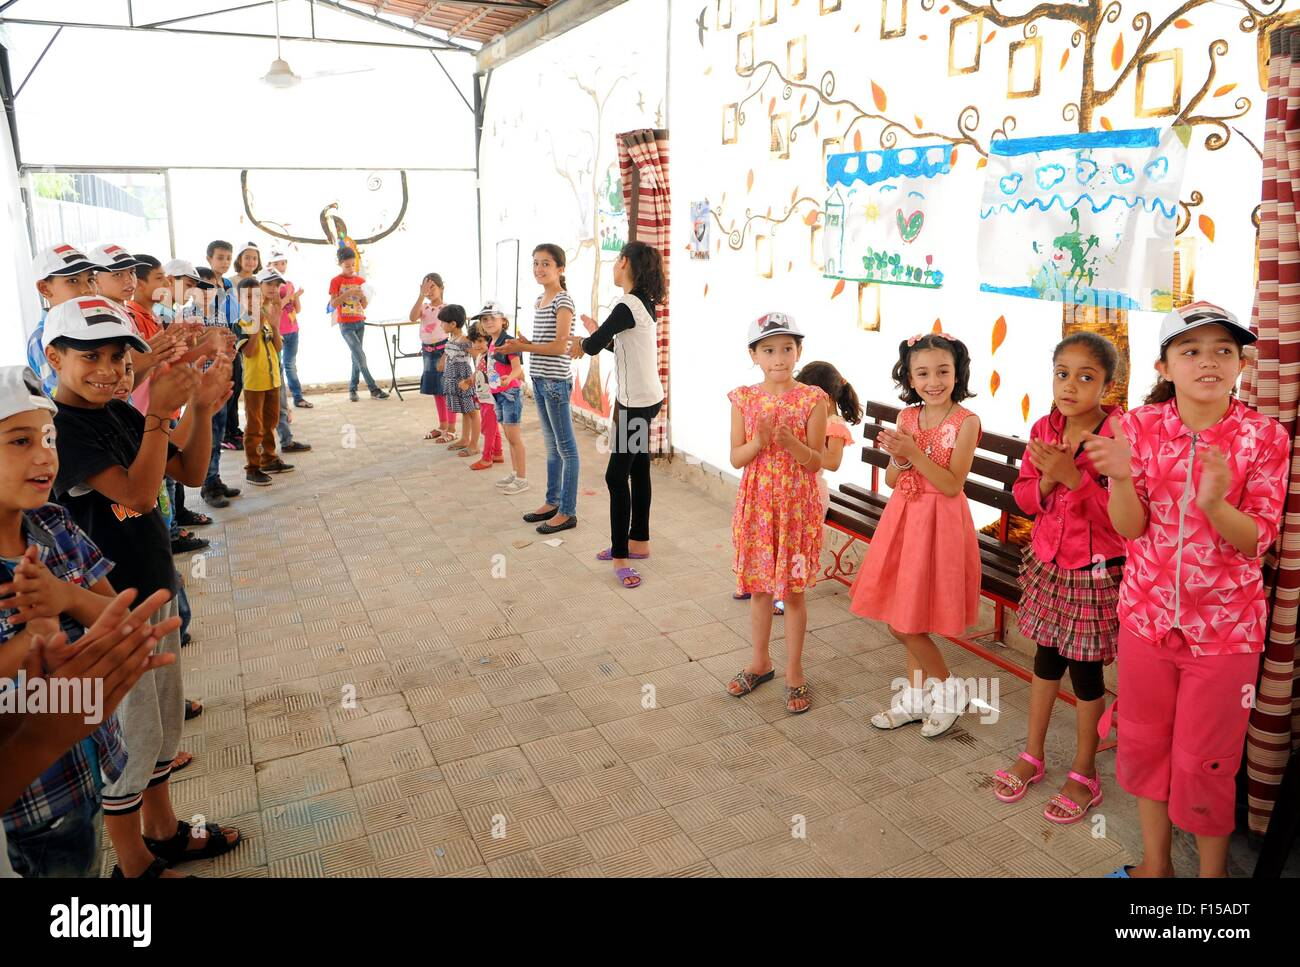 Damascus. 27th Aug, 2015. Syrian children sing during an extracurricular activity at a makeshift workshop in Damascus, Stock Photo